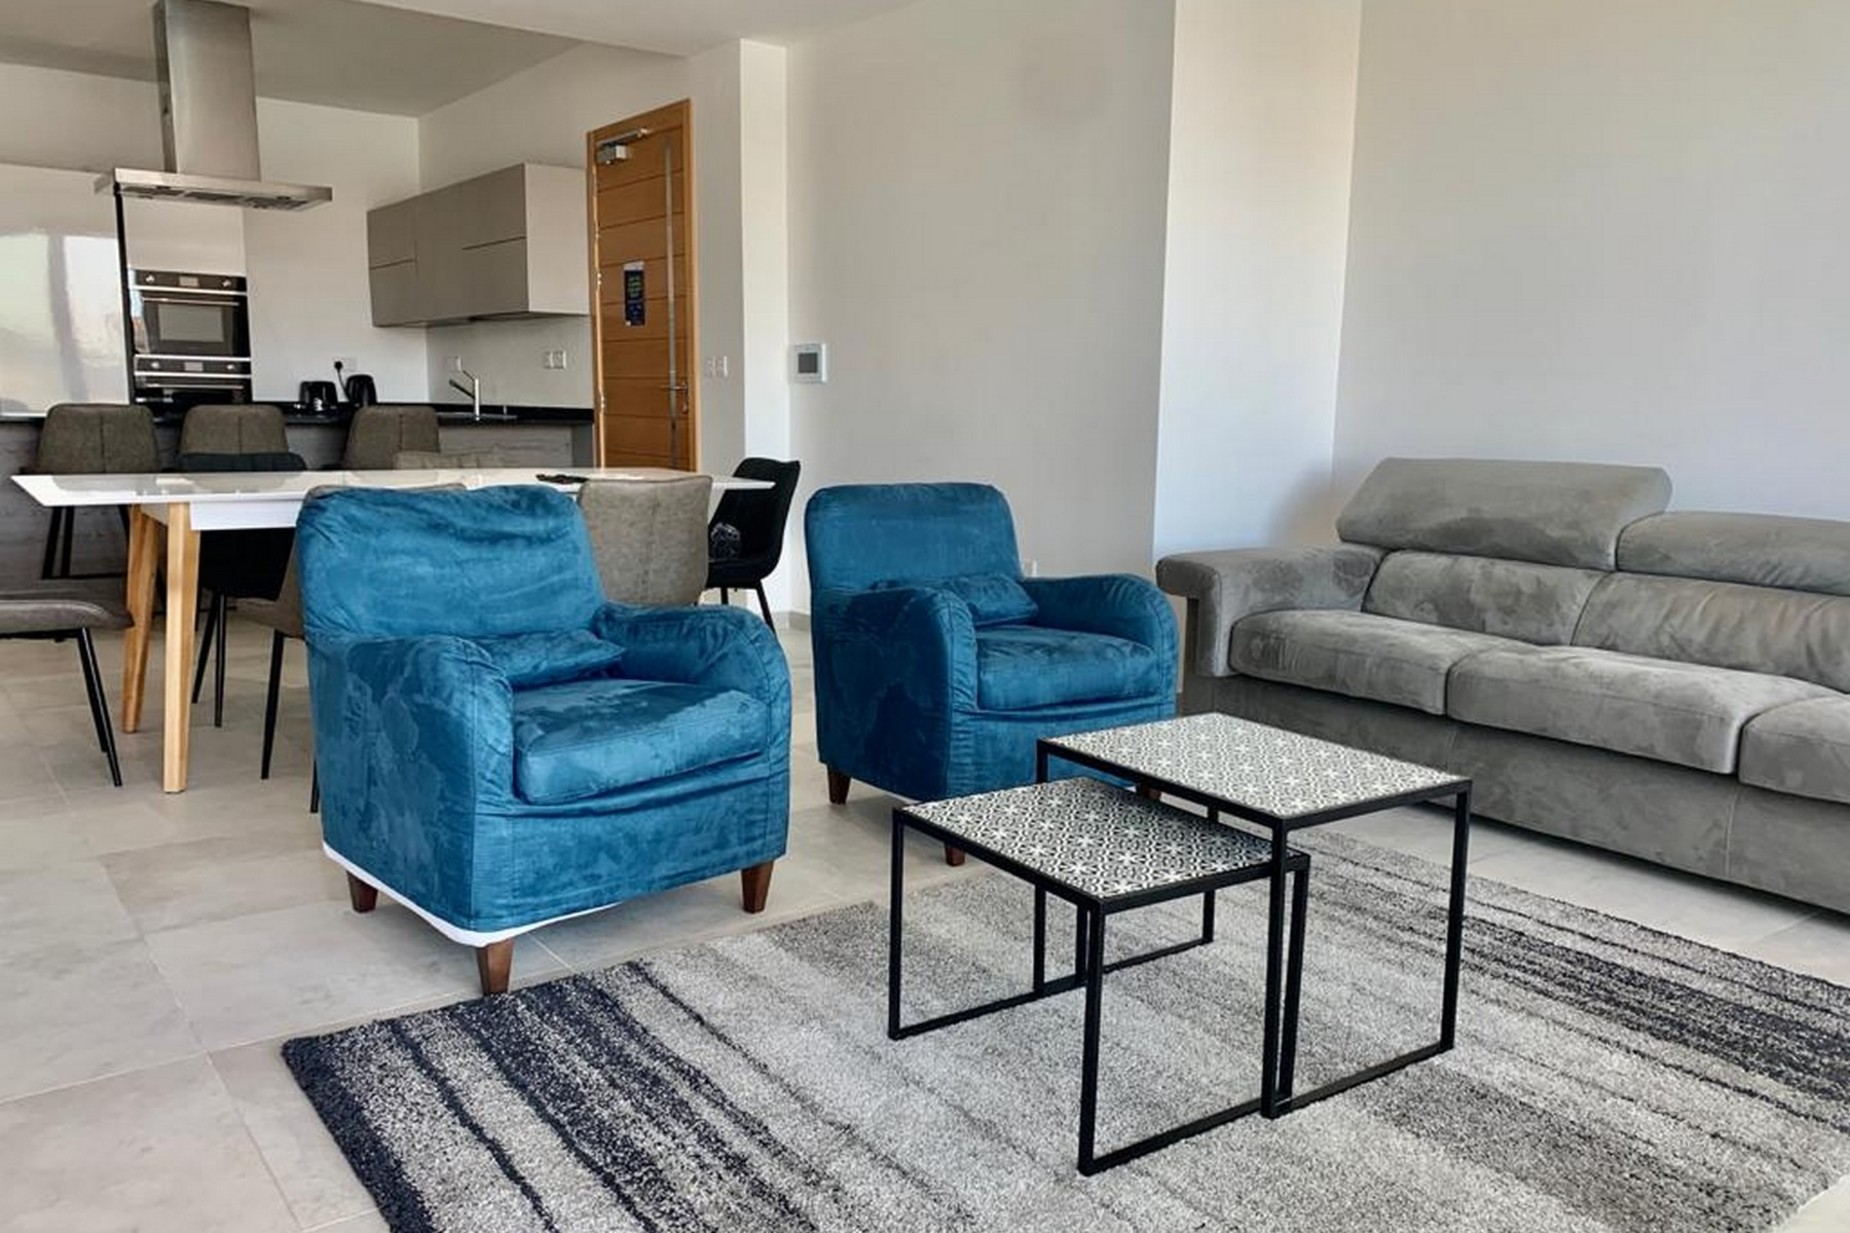 2 bed Apartment For Rent in Sliema, Sliema - thumb 3